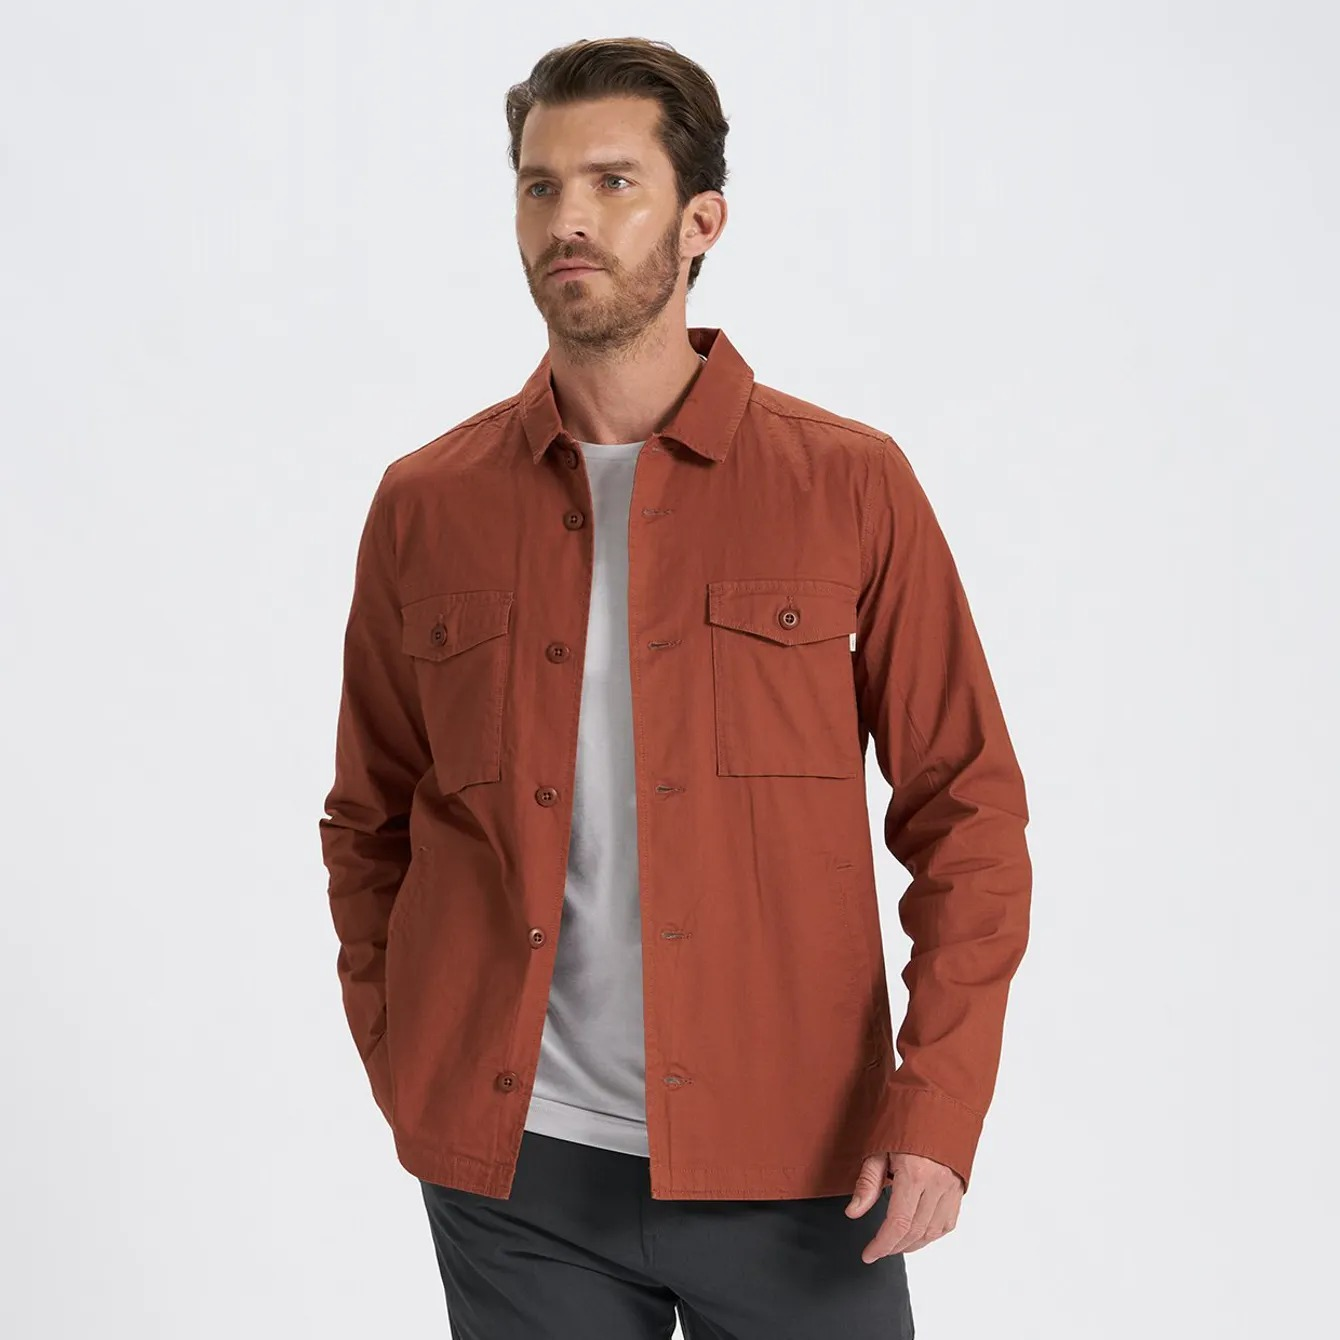 vuori ripstop jacket in dark copper